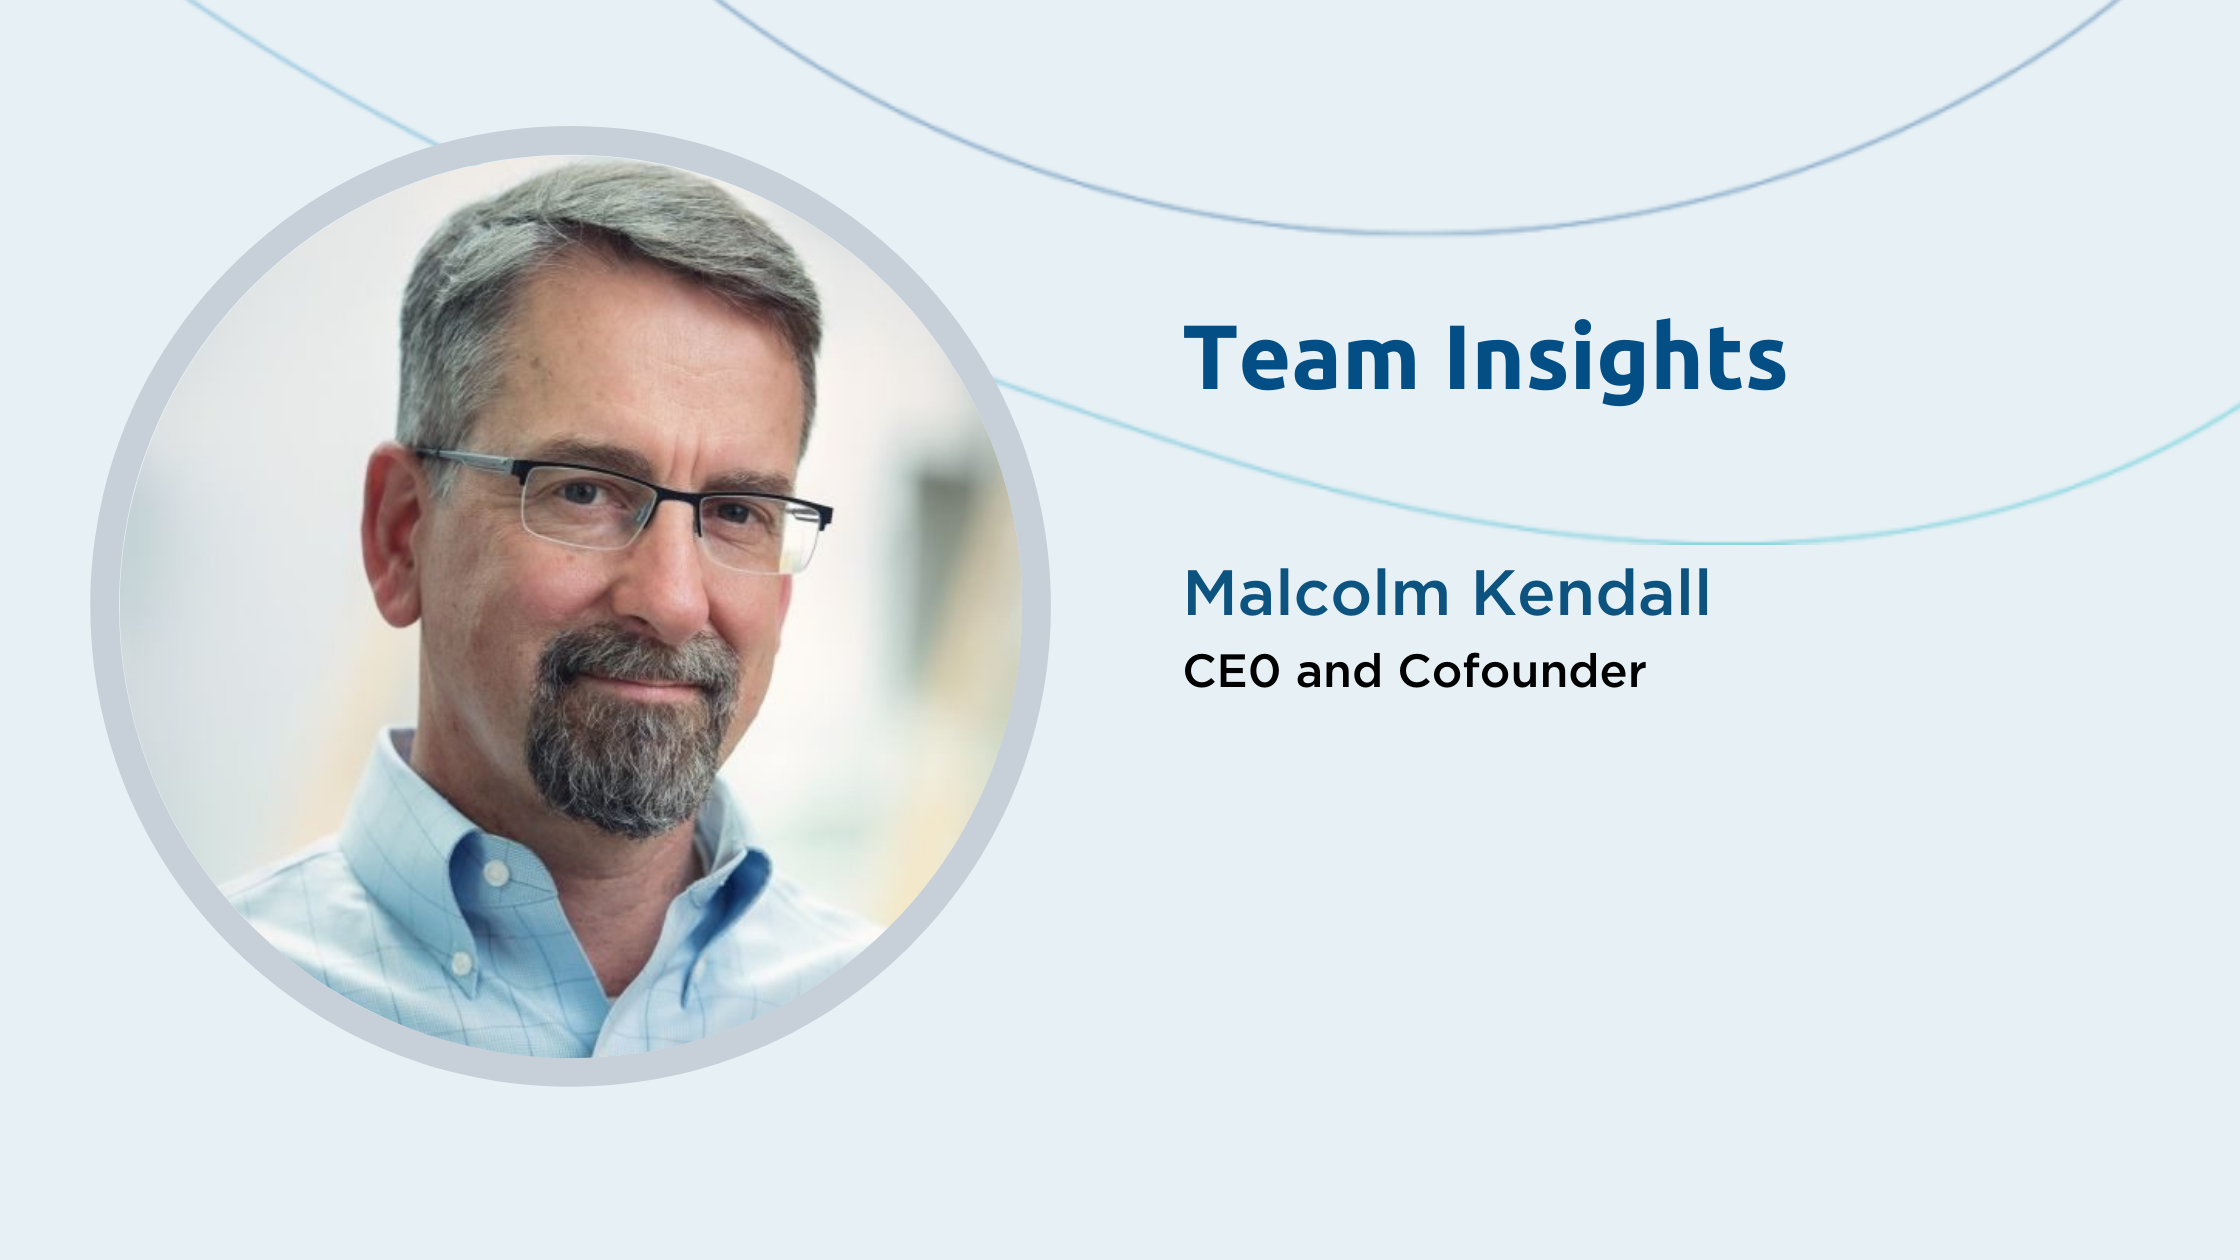 Team Insights: Malcolm Kendall